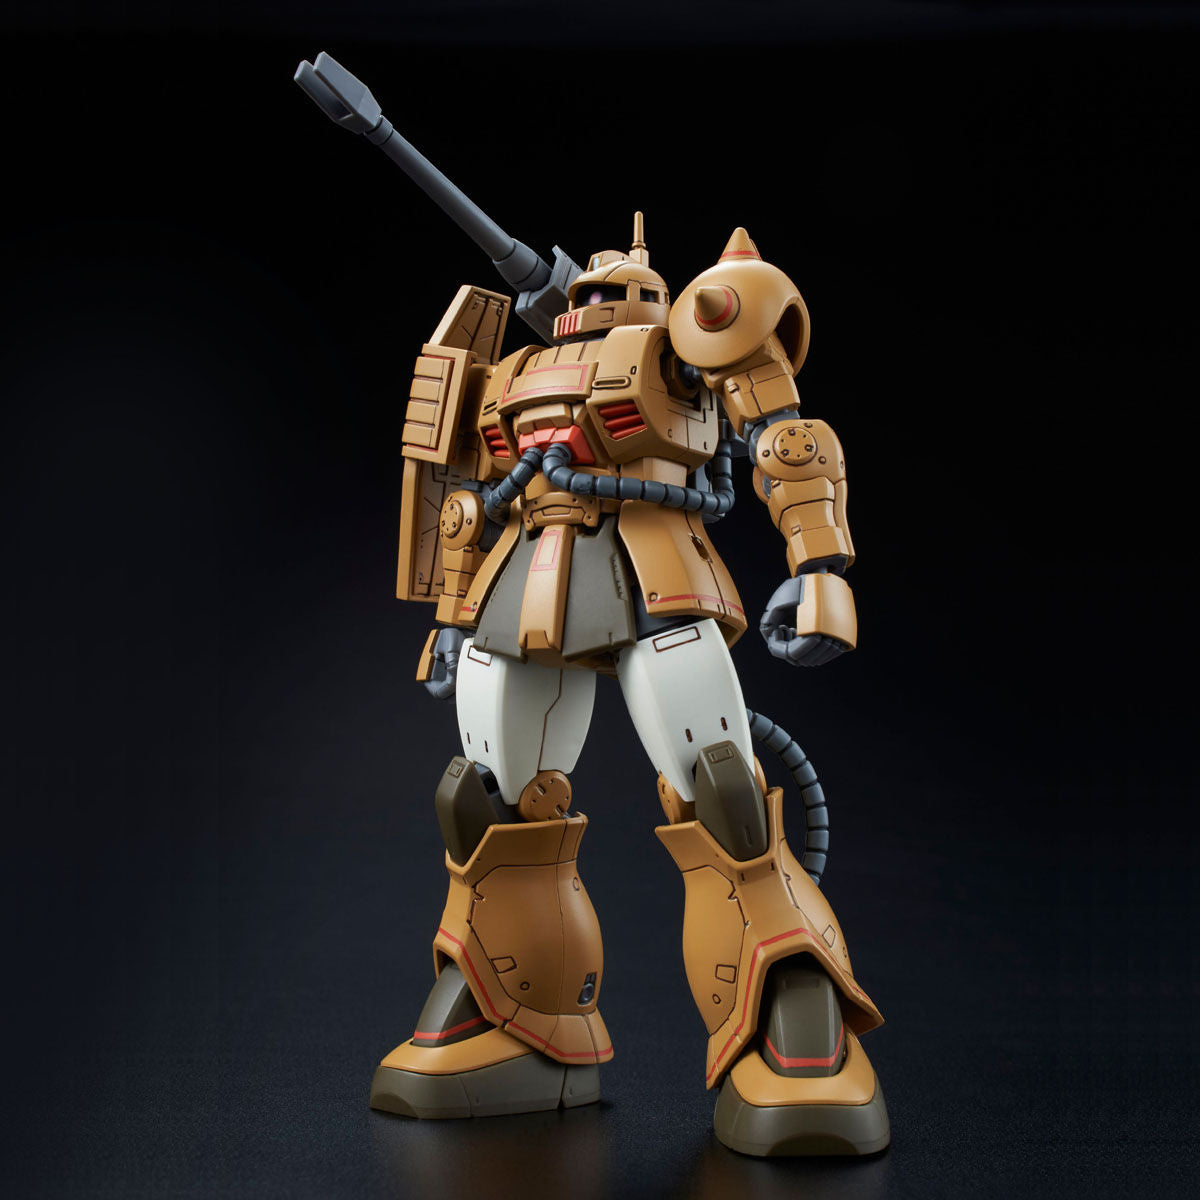 P-Bandai: HG 1/144 Zaku Cannon Test Type [End of September]